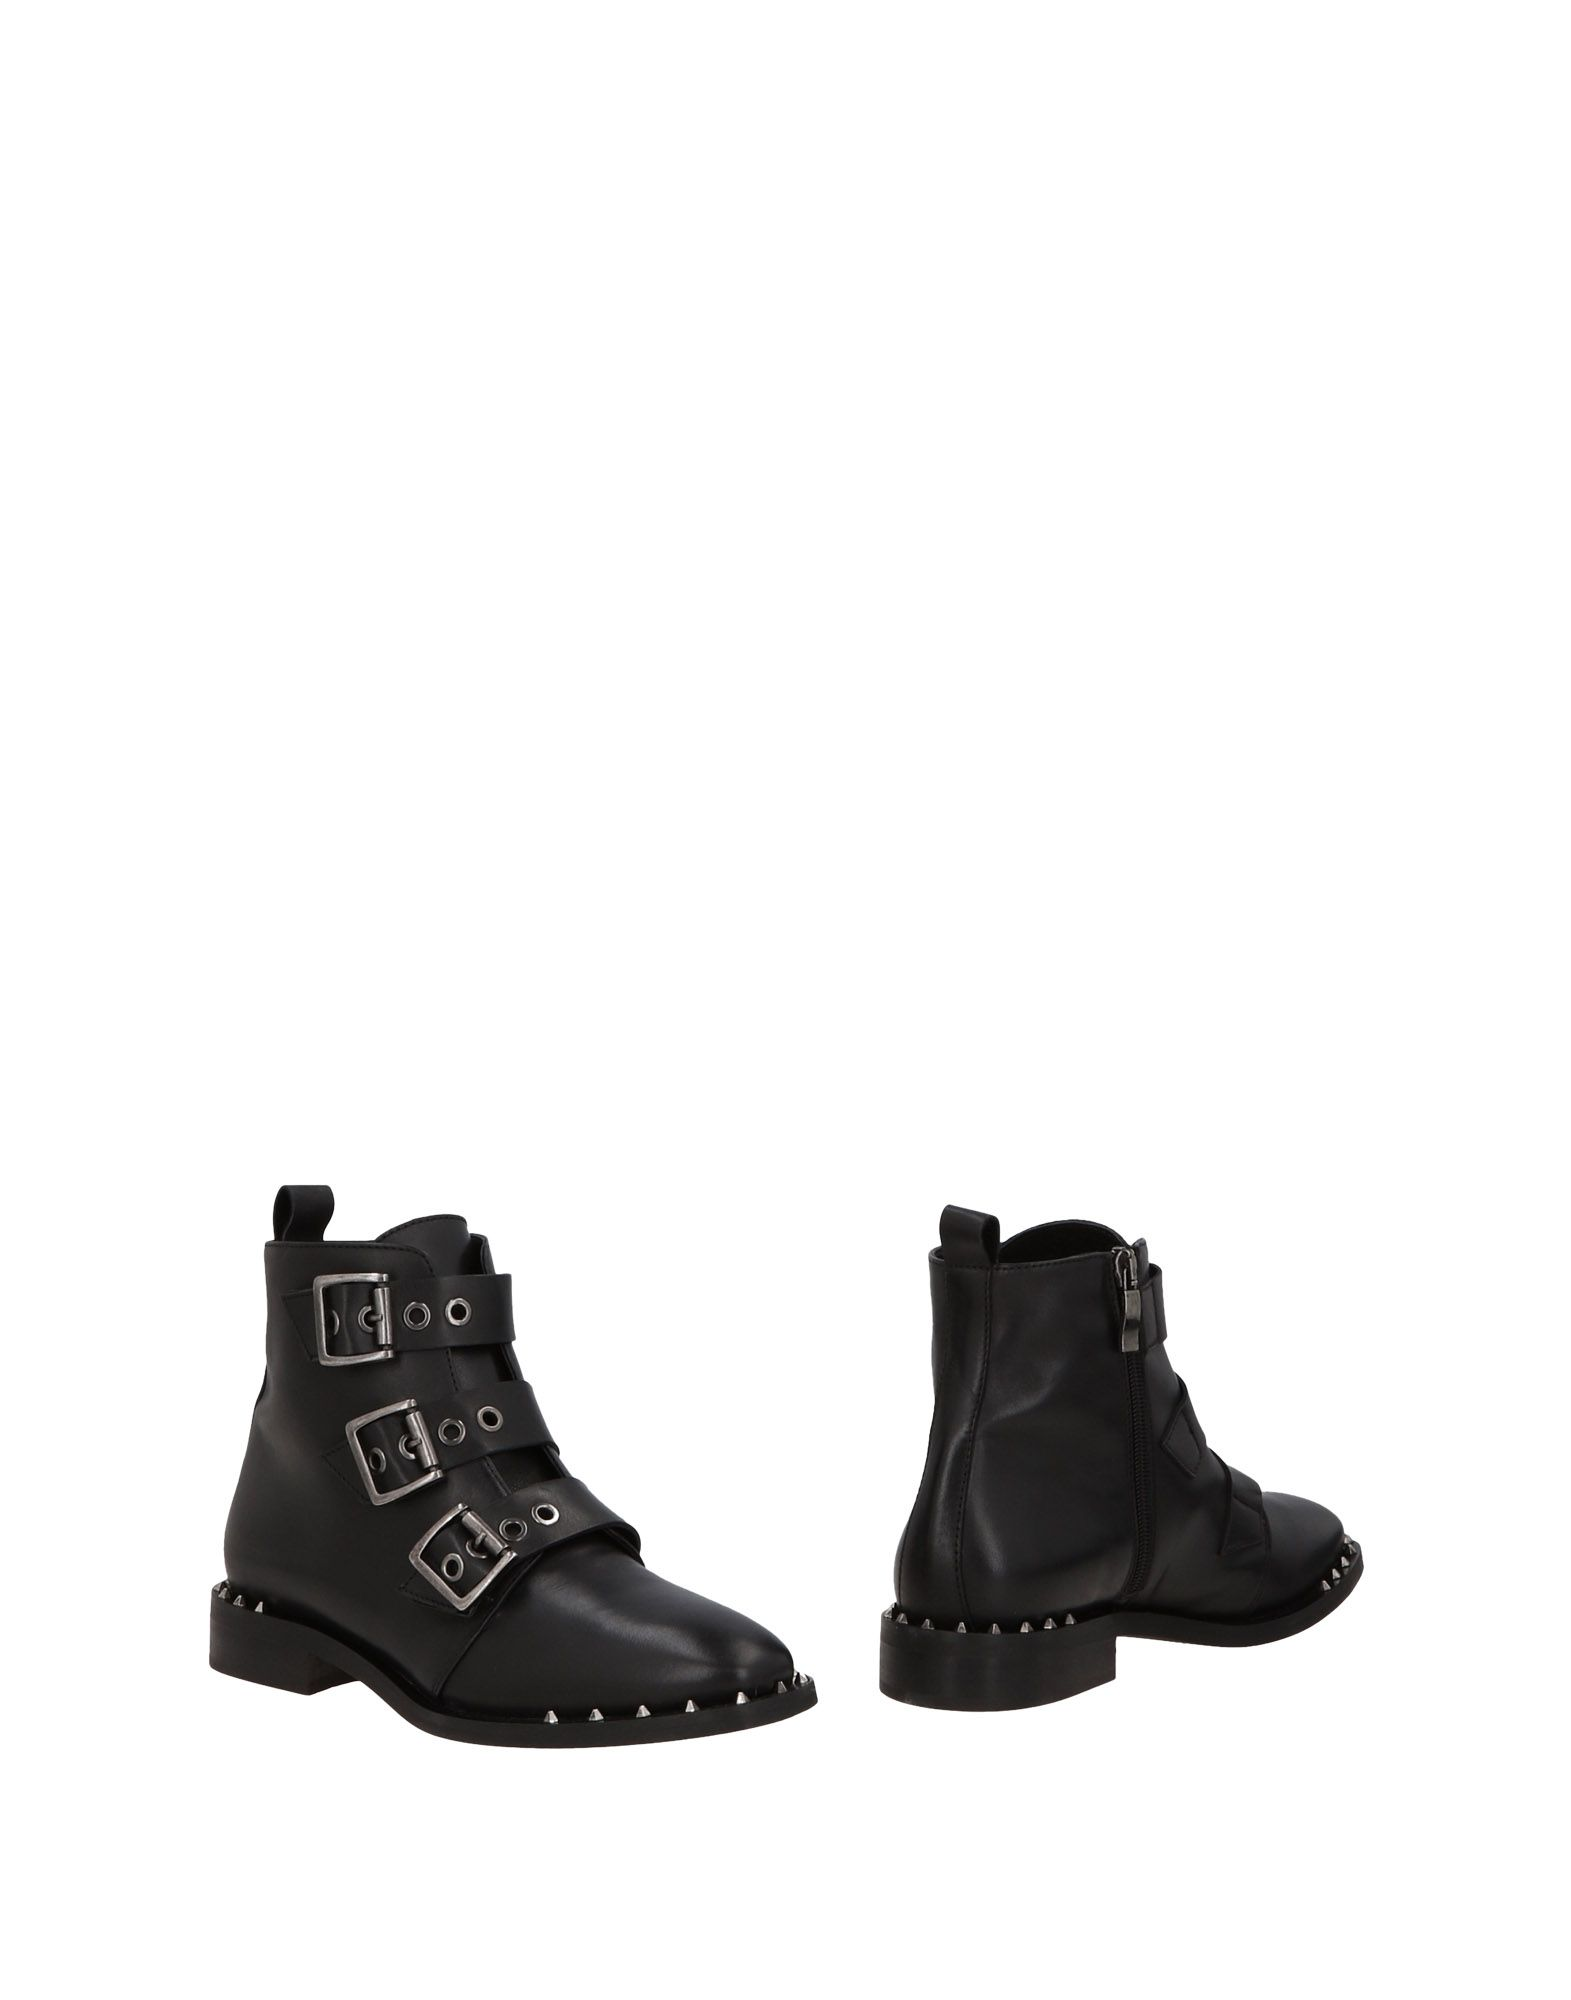 Shoppable Search Cut Engineer Shoes Safety Boots Iron Suede Leather Black 11476819rl 14 F